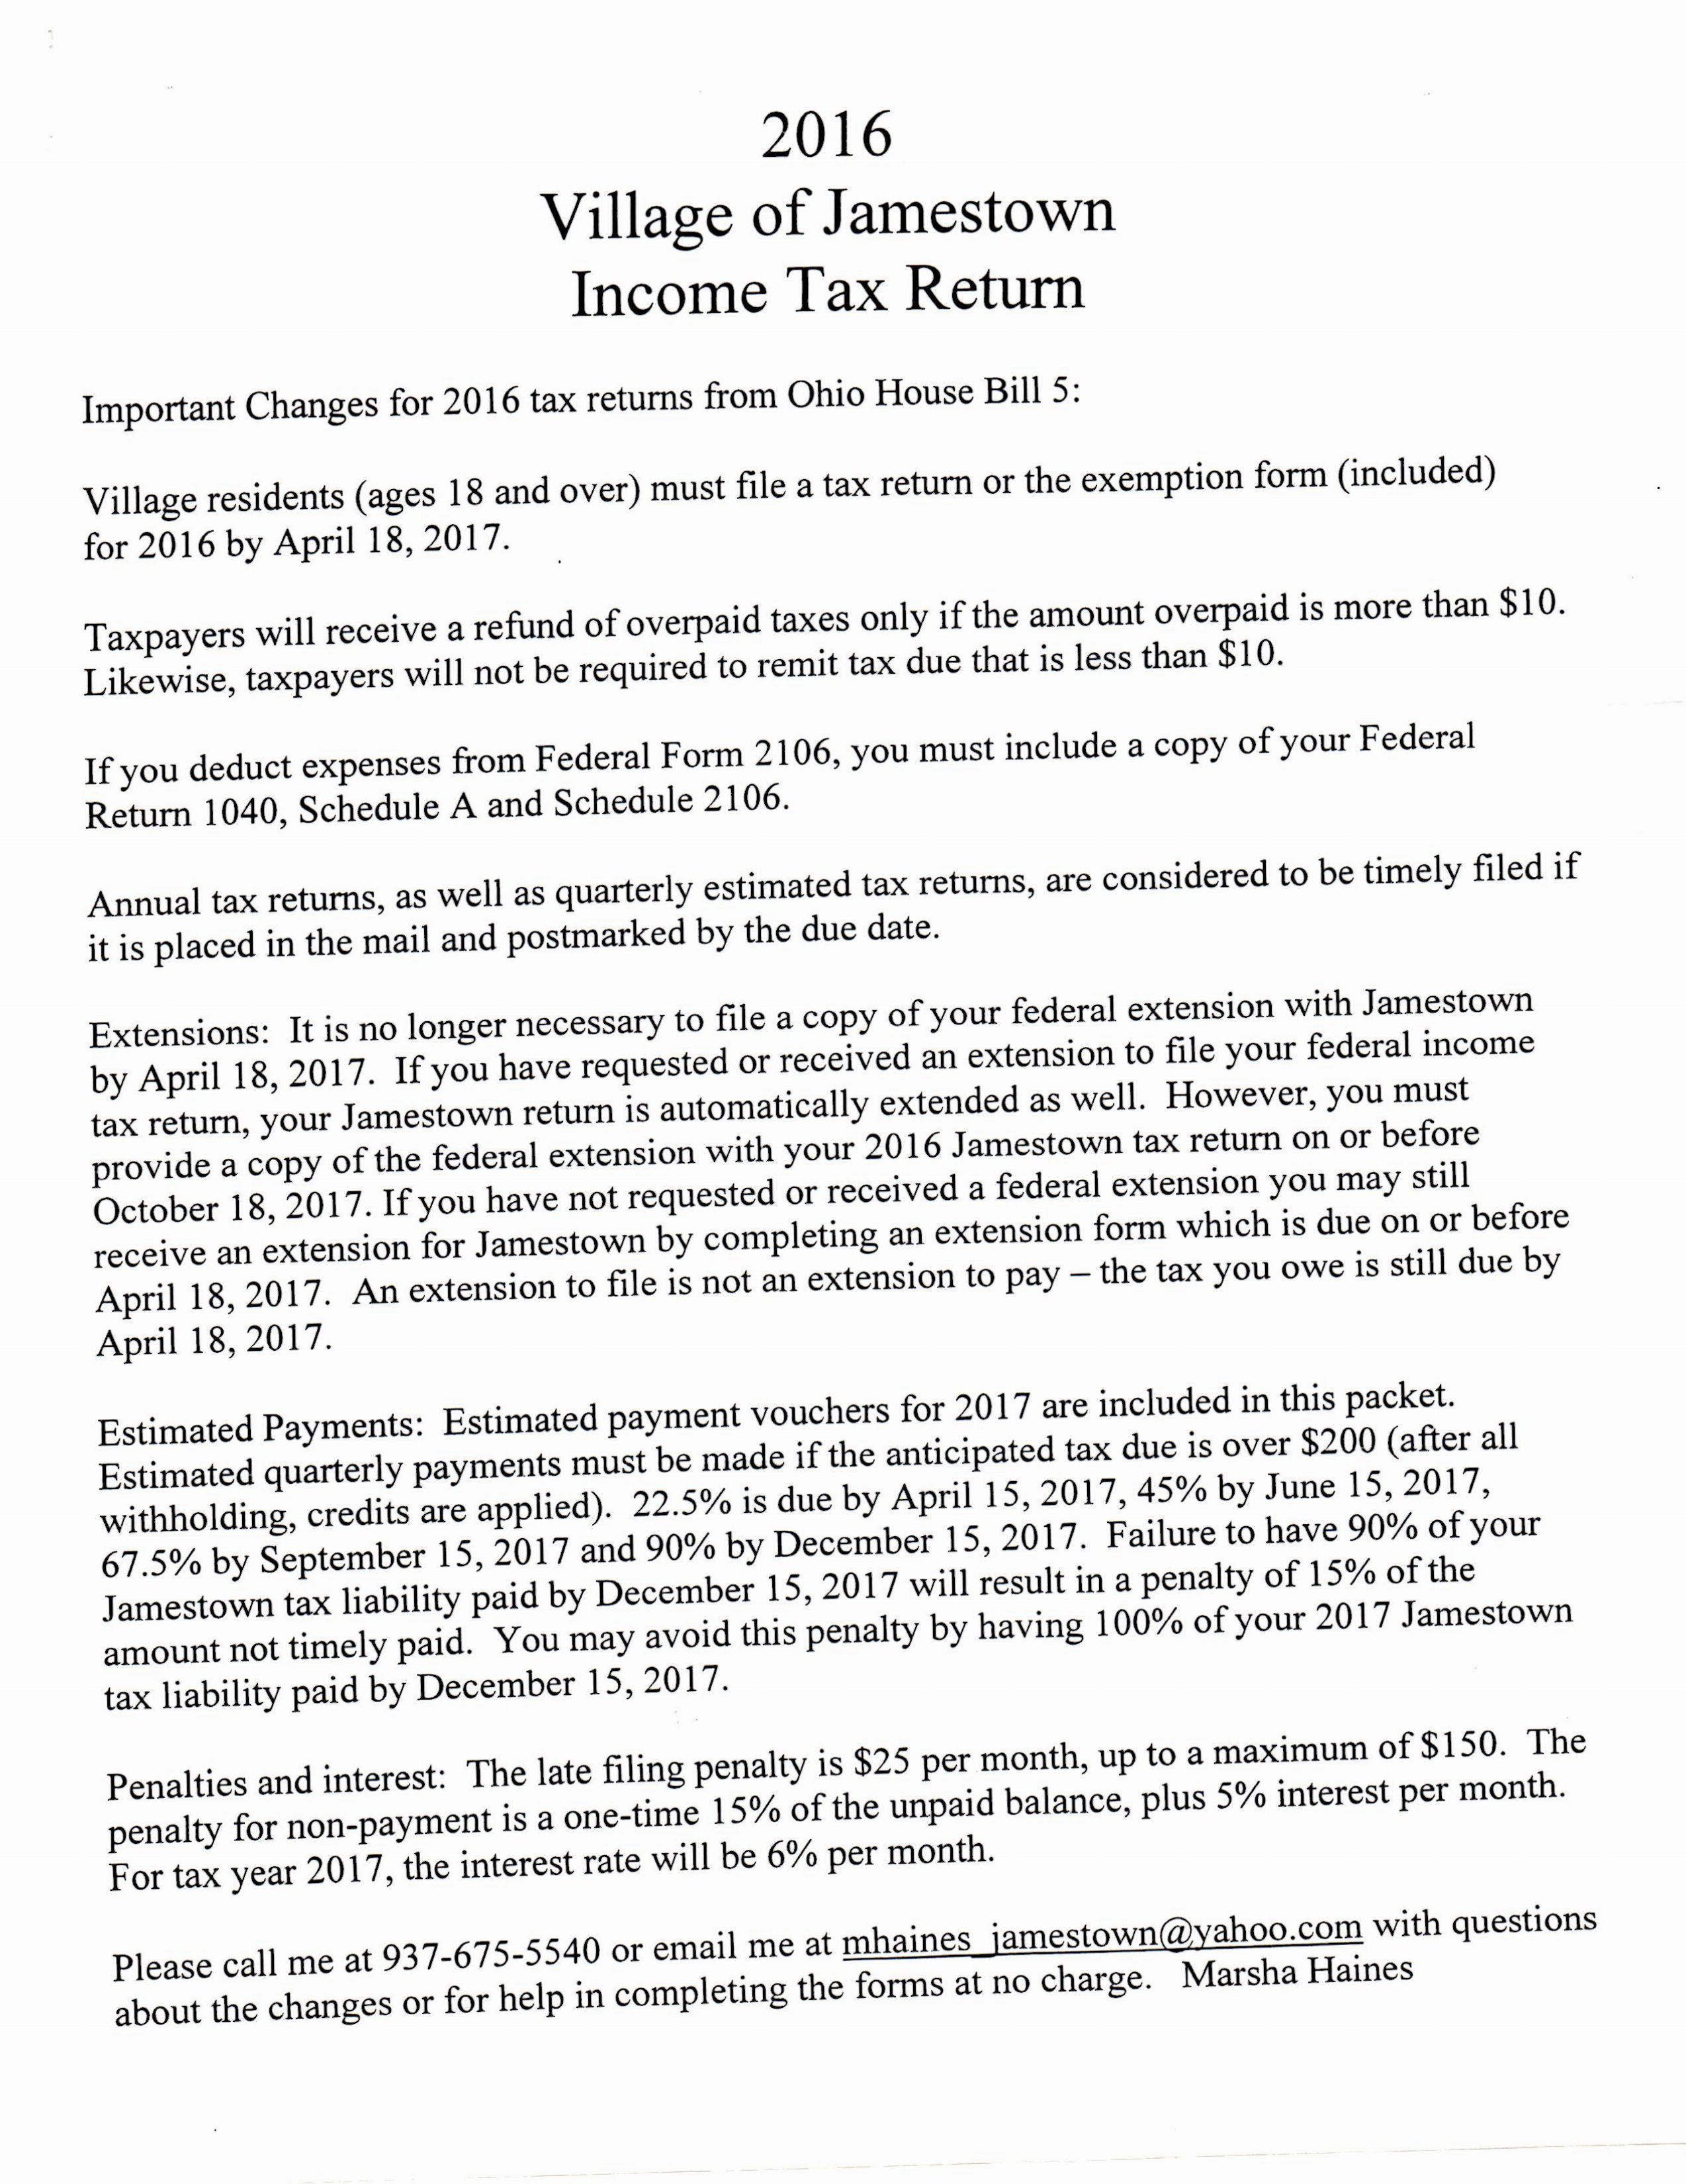 Tax Forms | The Village of Jamestown